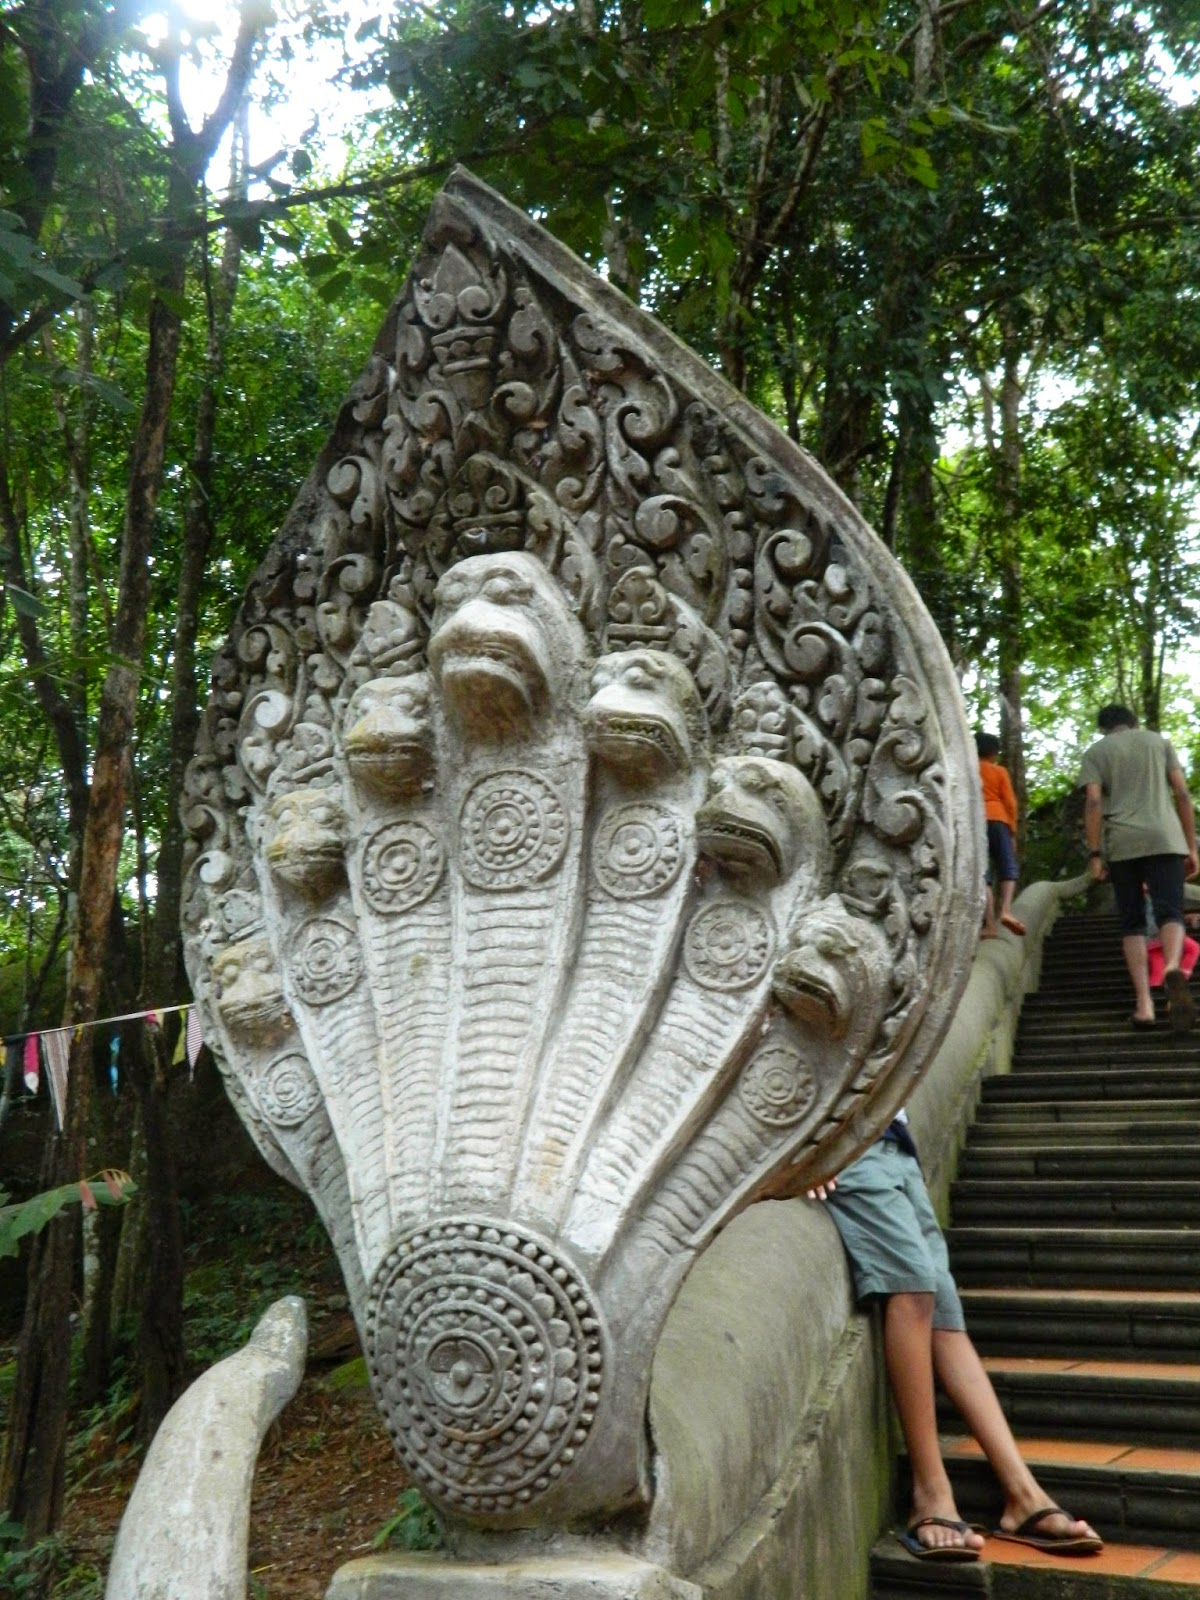 Naga - the mighty snake depicted almost everywhere in the place of handails in Cambodia